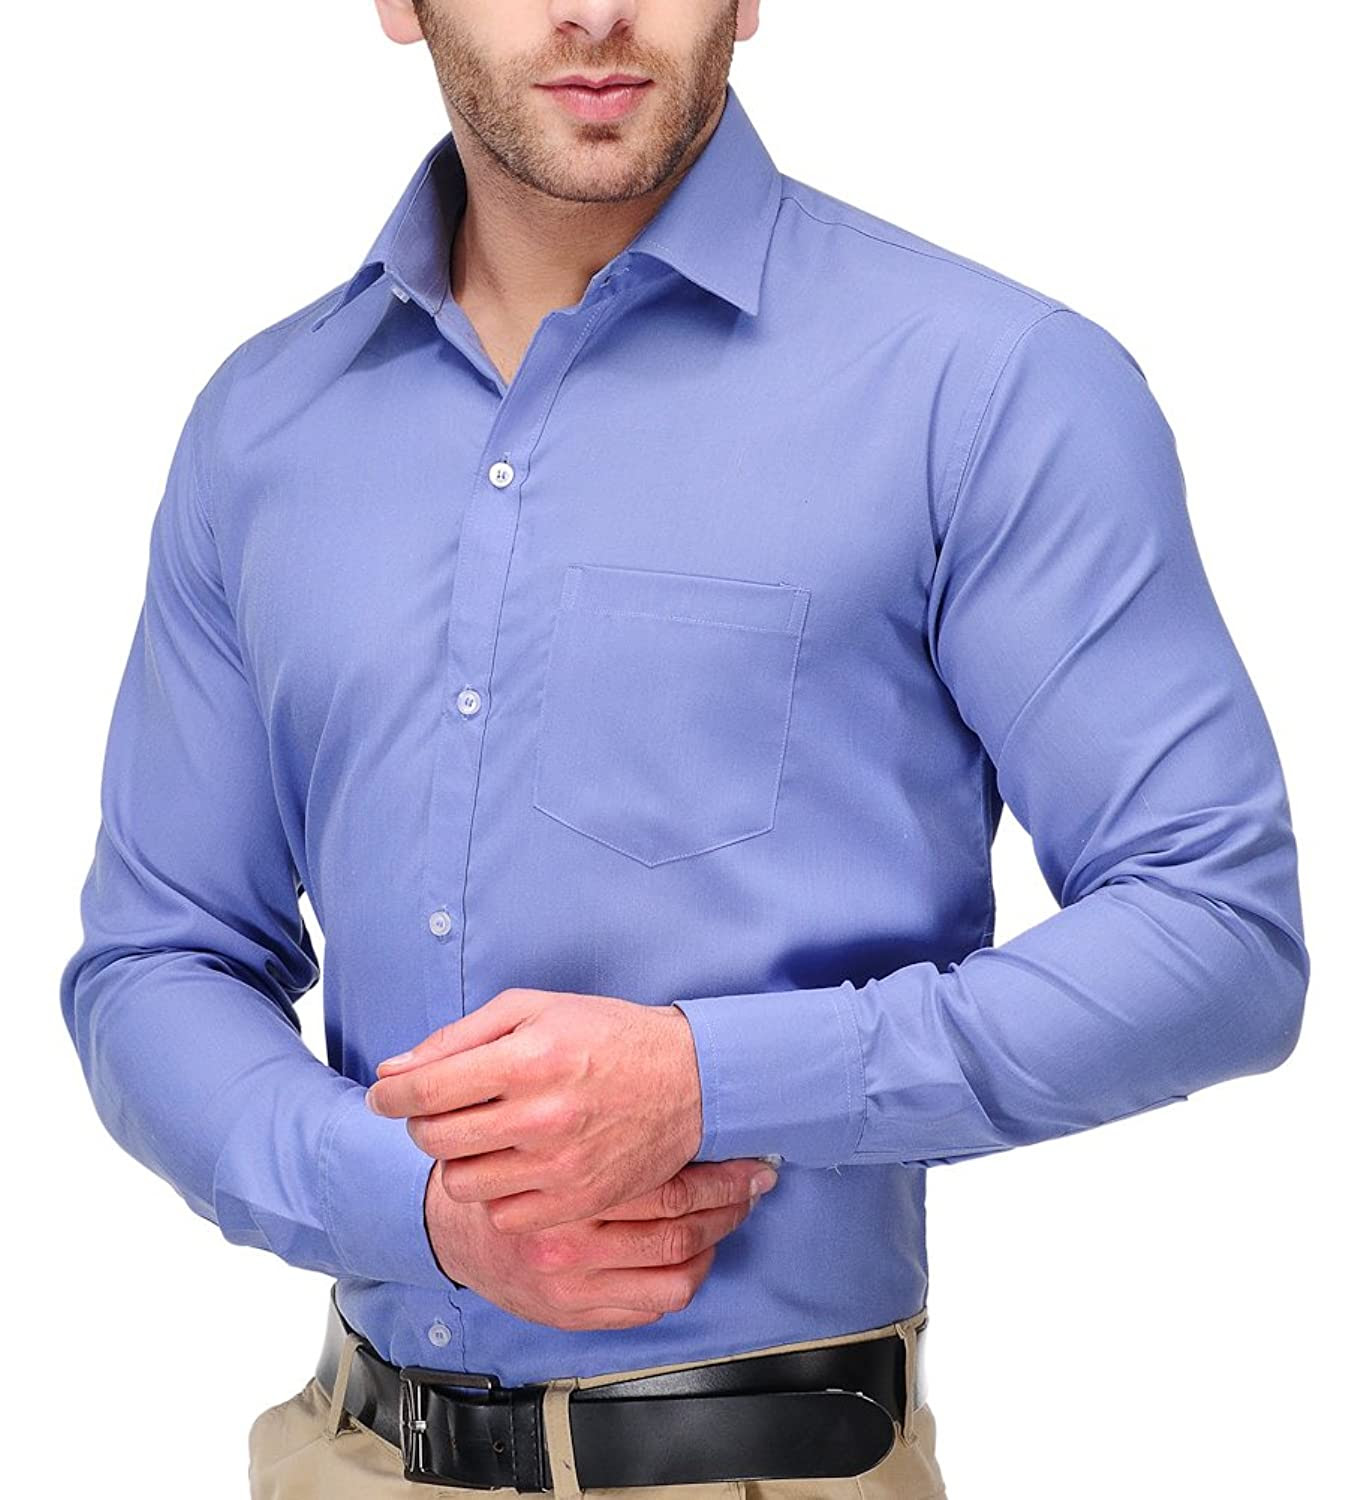 Deals on Men's Formal Shirt